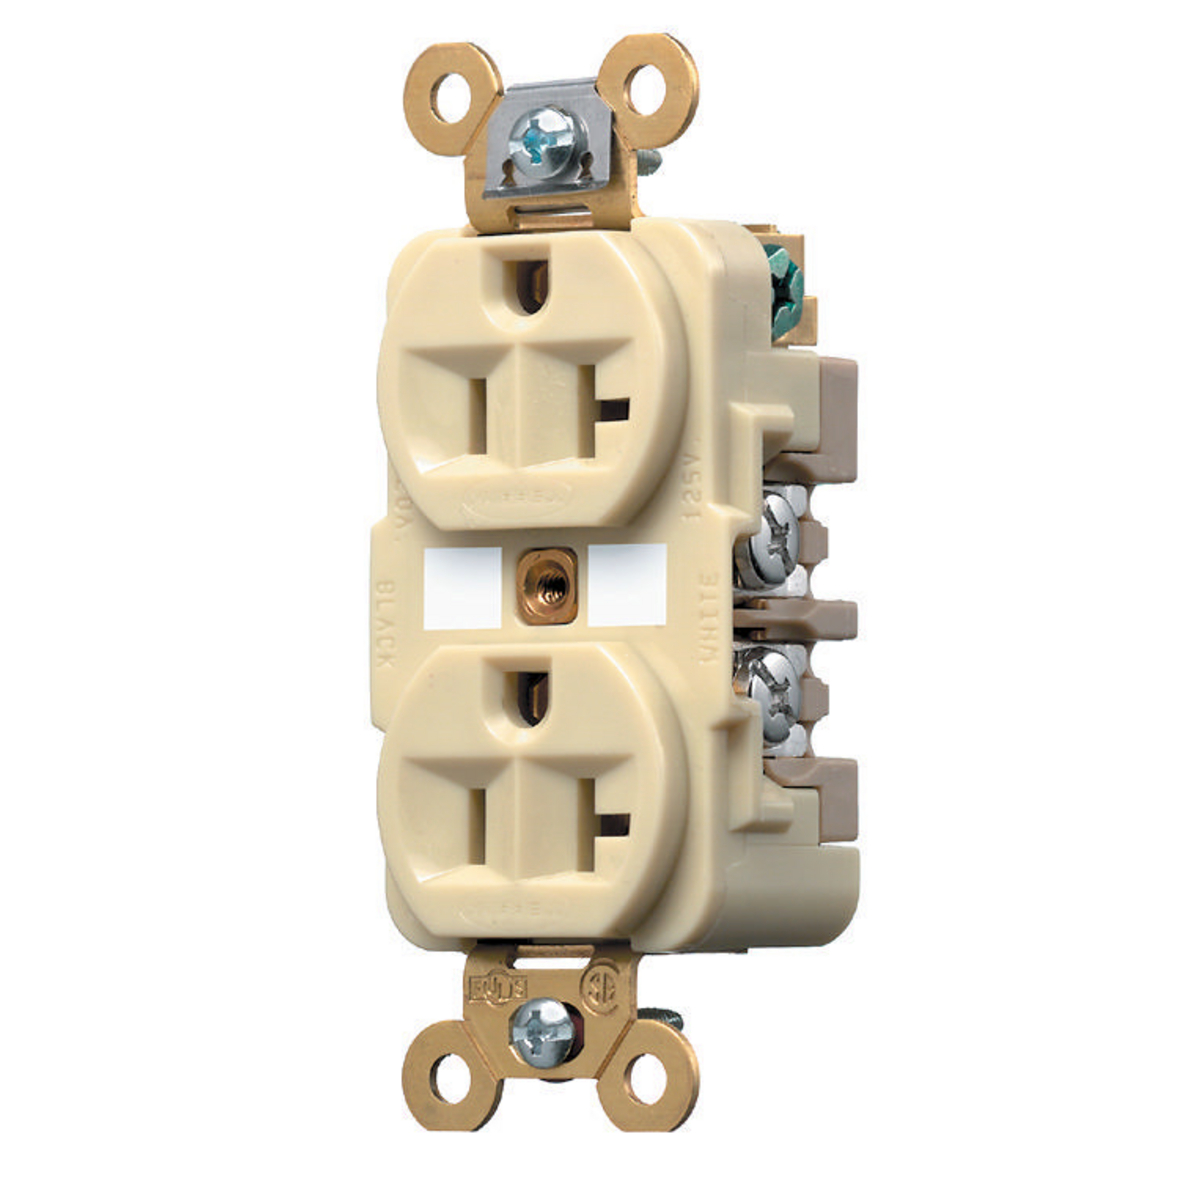 Wire Devices Receptacles Duplex Single Receptacle Dominion Electric Hubbell Usb Wiring Diagram Hub Hbl5362i Dplx Rcpt Nema5 20r Cs10